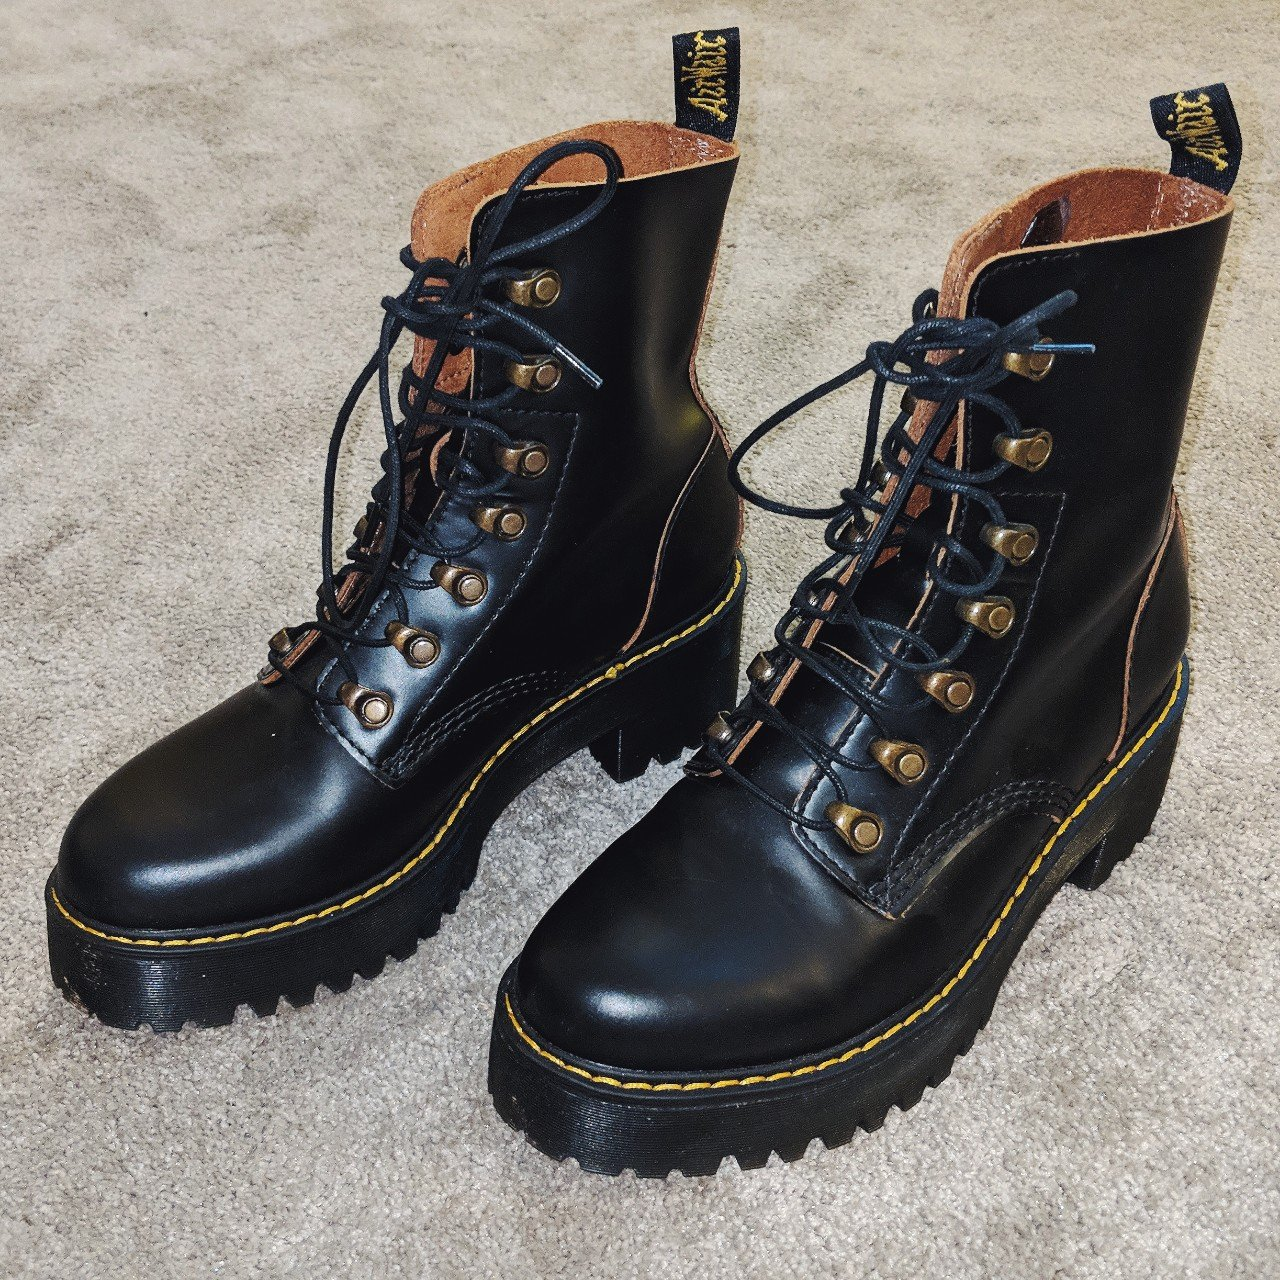 c9c9b2245133 Size 6 Dr Martens Leona Vintage Smooth boots. Only worn new! - Depop